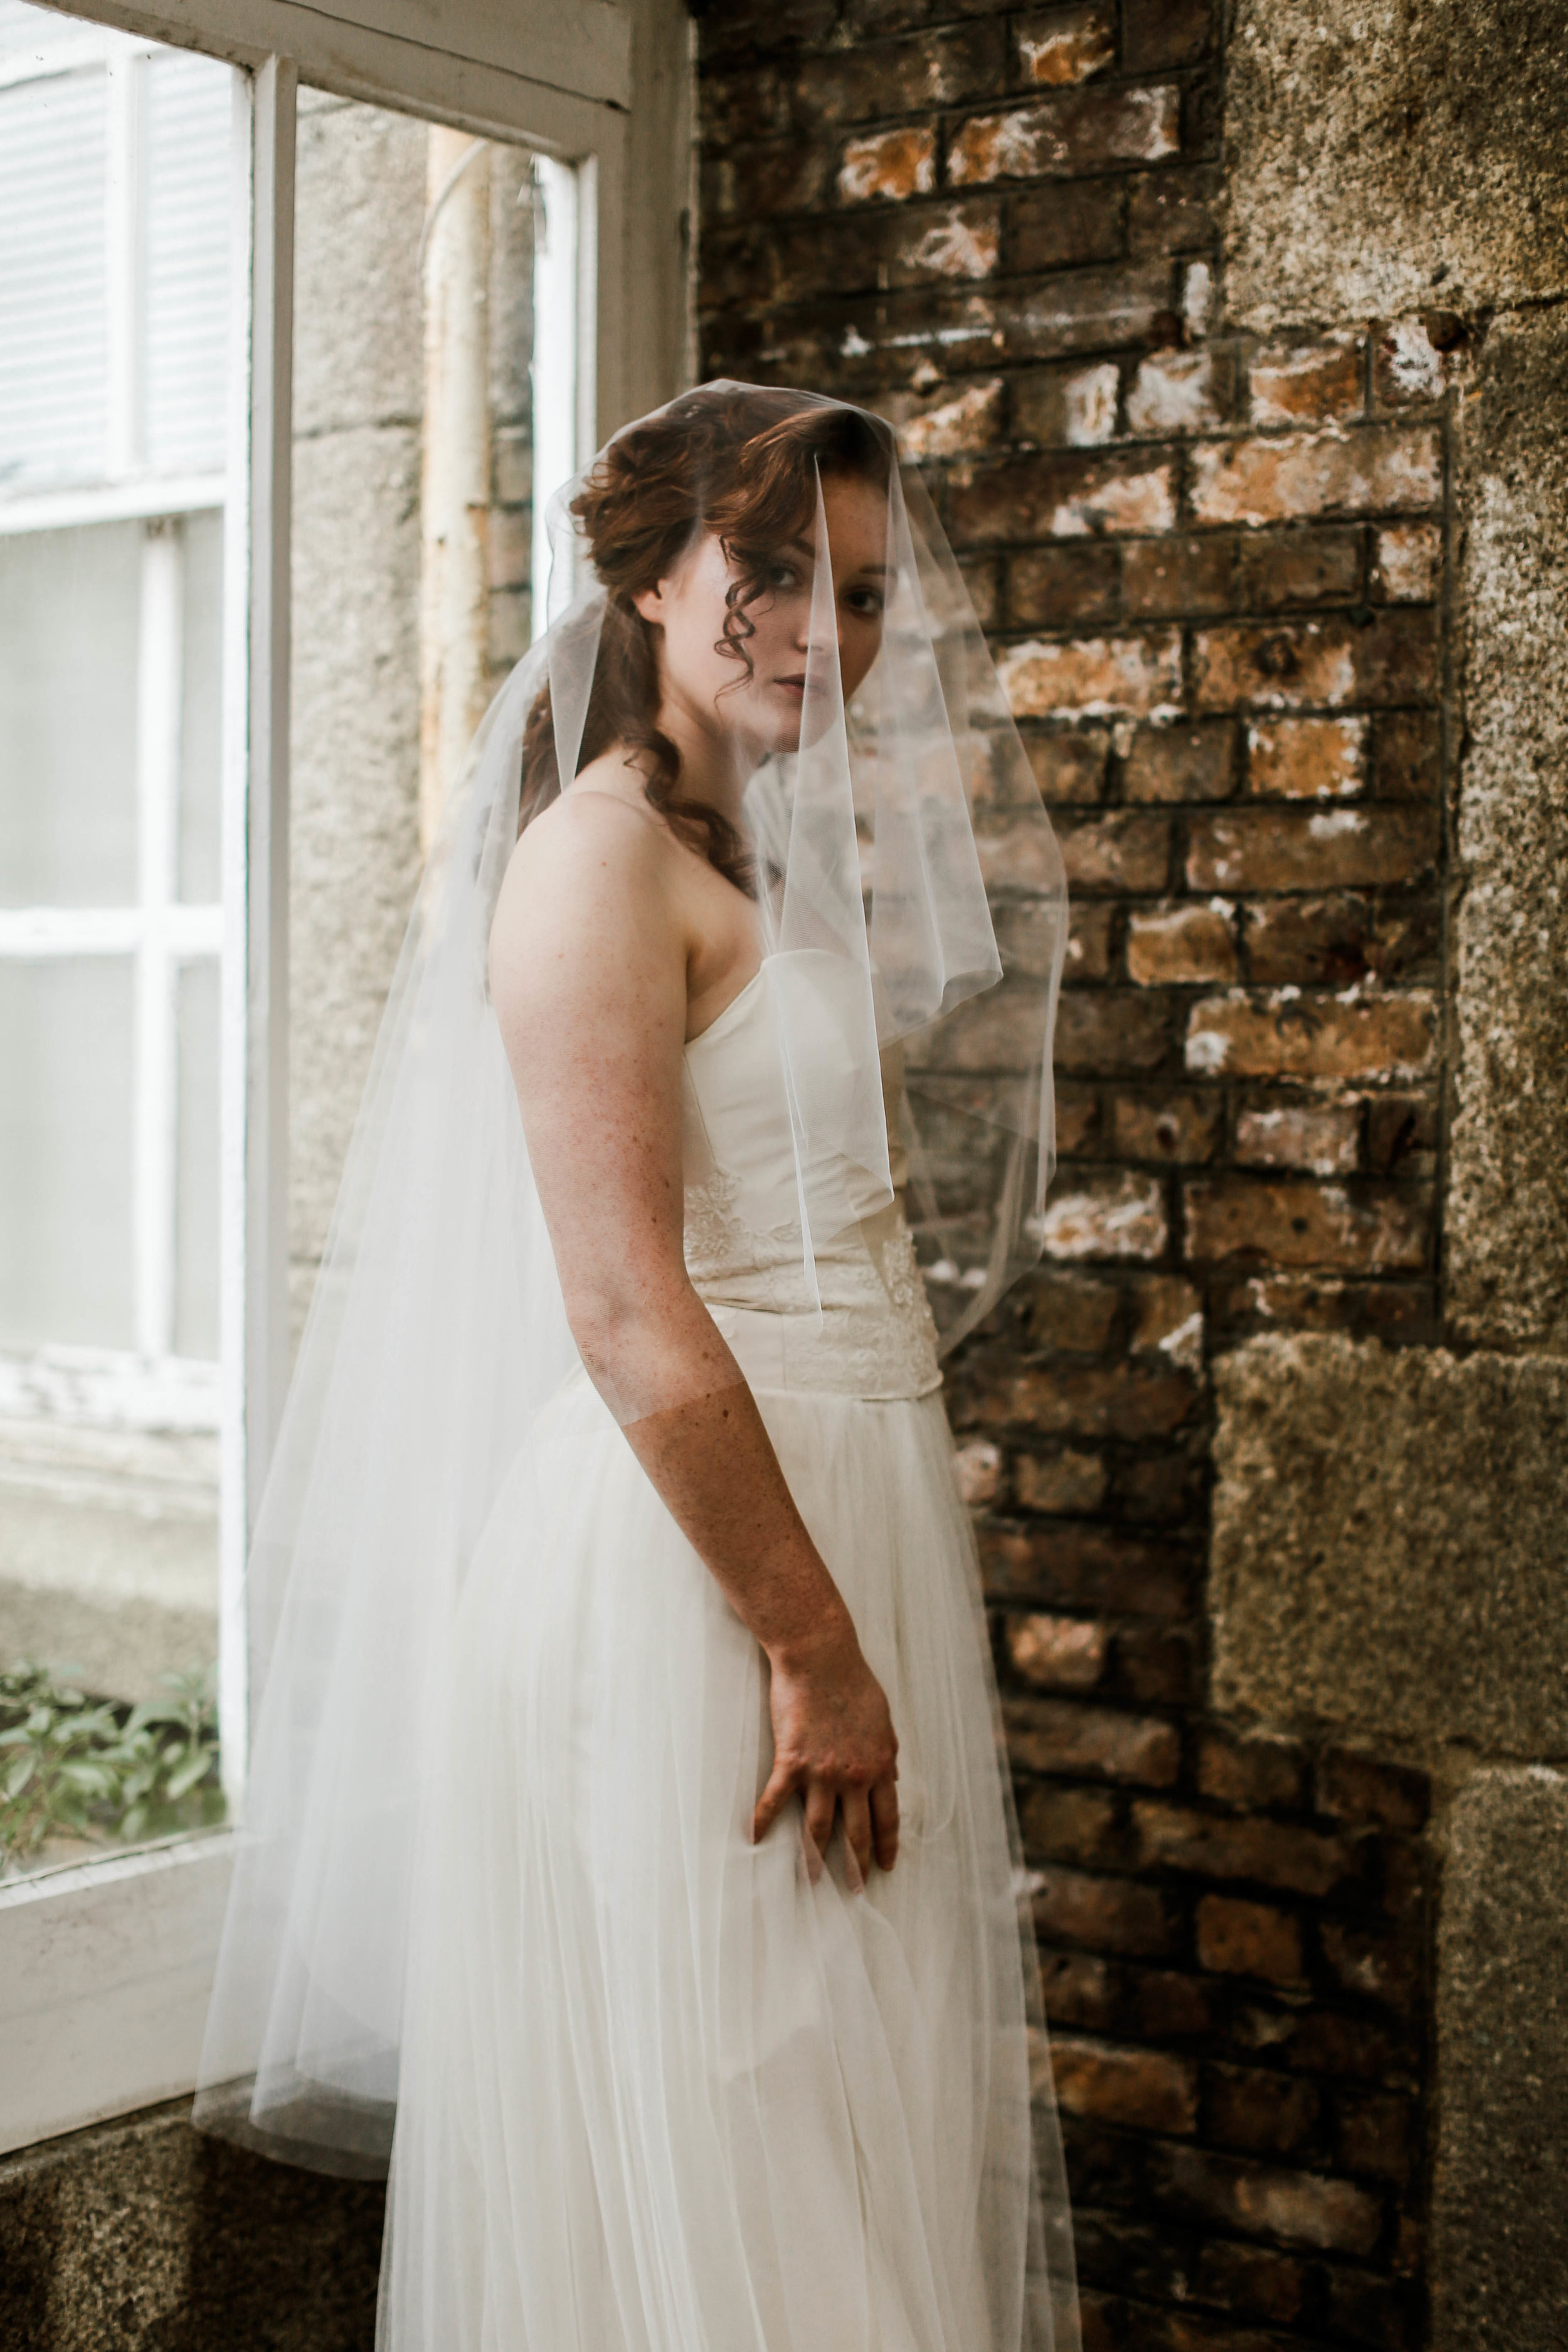 Fingertip wedding veil with blusher. Bespoke veils, Truro,  Cornwall, UK